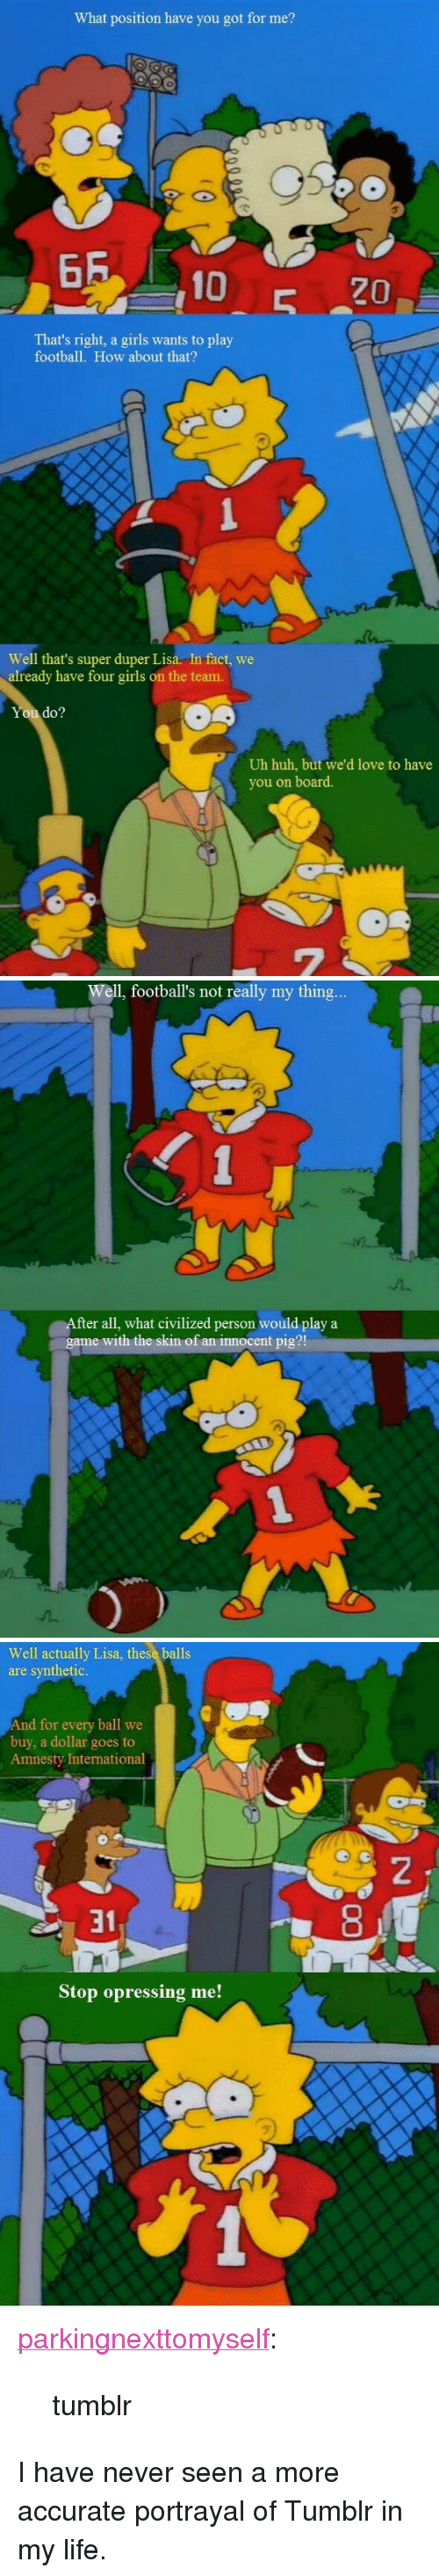 """Play A Game: What position have you got for me?  65 10  That's right, a girls wants to play  football. How about that?  Well that's super duper Lisa. In fact, we  already have four girls on the team.  You do?  Uh huh, but we'd love to have  you on board.  7   Well, football's not really my thing  fter all, what civilized person would play a  game with the skin of an innocent pig?  t4.  2.   Well actually Lisa, these balls  are synthetic.  nd for every ball we  buy, a dollar goes to  Amnesty International  2  31  Stop opressing me! <p><a class=""""tumblr_blog"""" href=""""http://parkingnexttomyself.tumblr.com/post/101441329913/tumblr"""">parkingnexttomyself</a>:</p> <blockquote> <p>tumblr</p> </blockquote>  <p>I have never seen a more accurate portrayal of Tumblr in my life.</p>"""